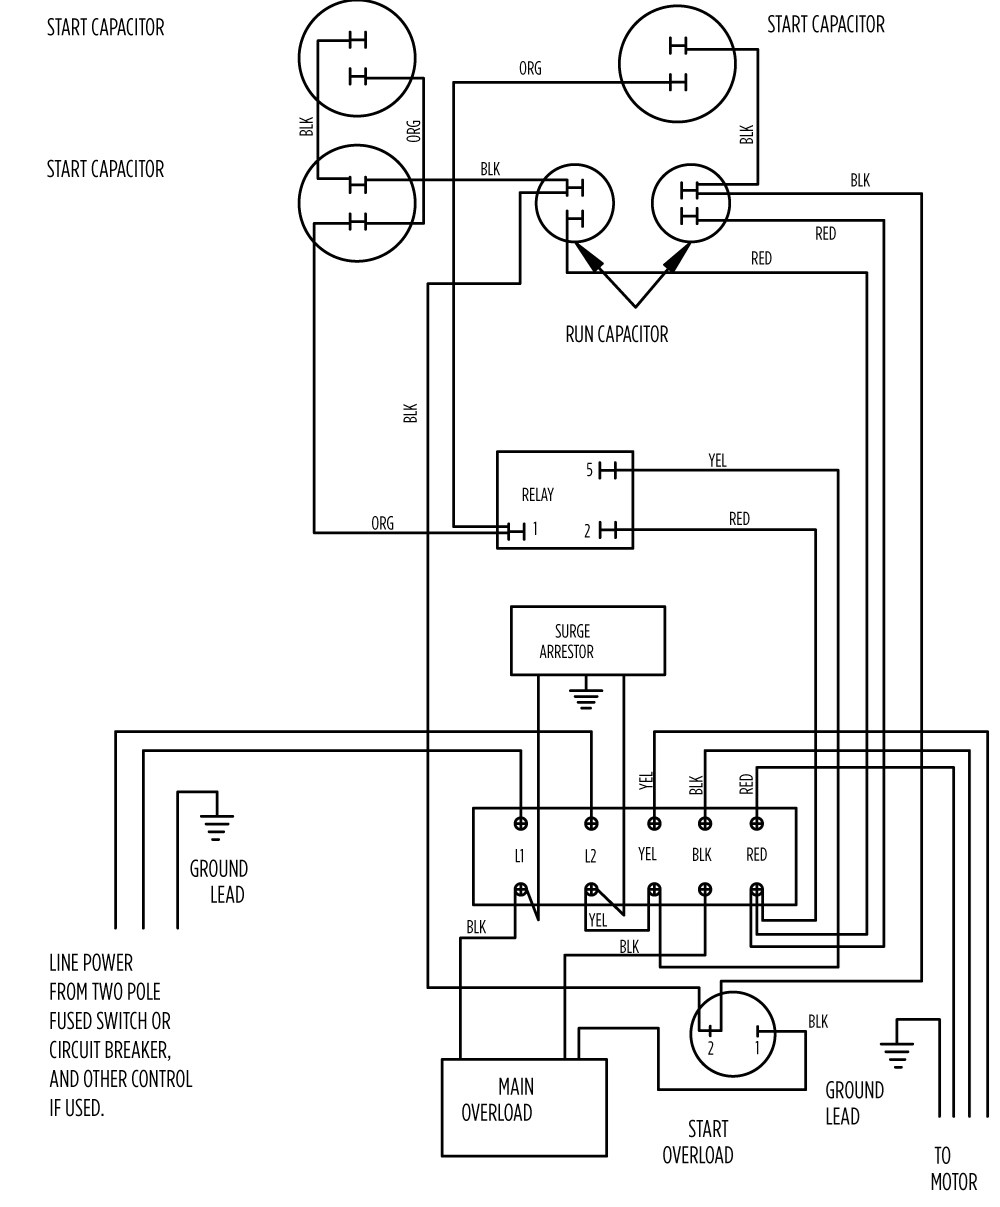 10 hp standard 282 202 9210 or 282 202 9230_aim gallery?format=jpg&quality=80 aim manual page 57 single phase motors and controls motor franklin control box wiring diagram at suagrazia.org